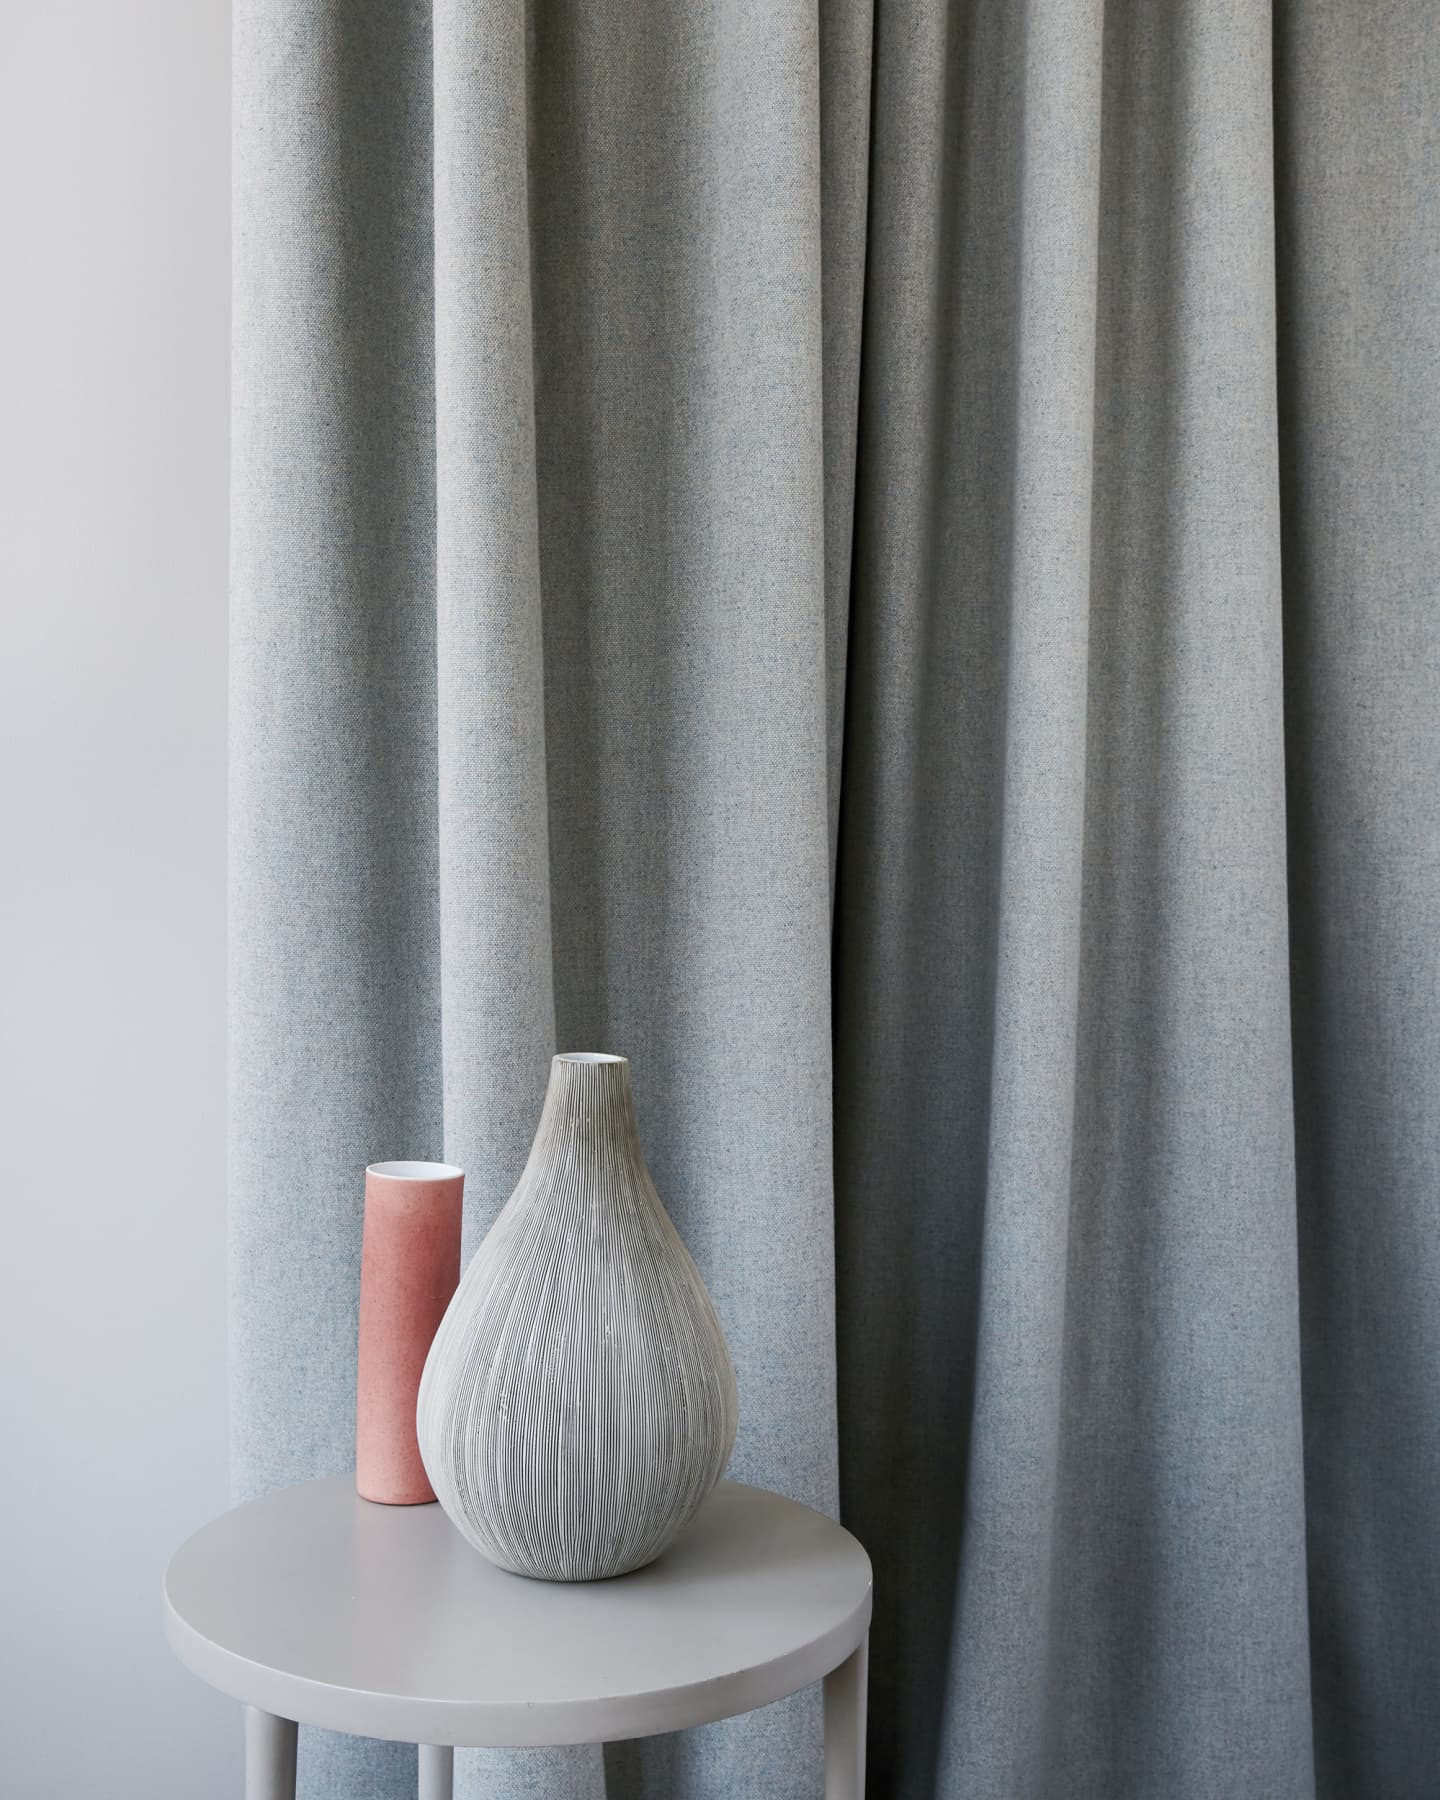 stood with ornaments and grey curtains behind